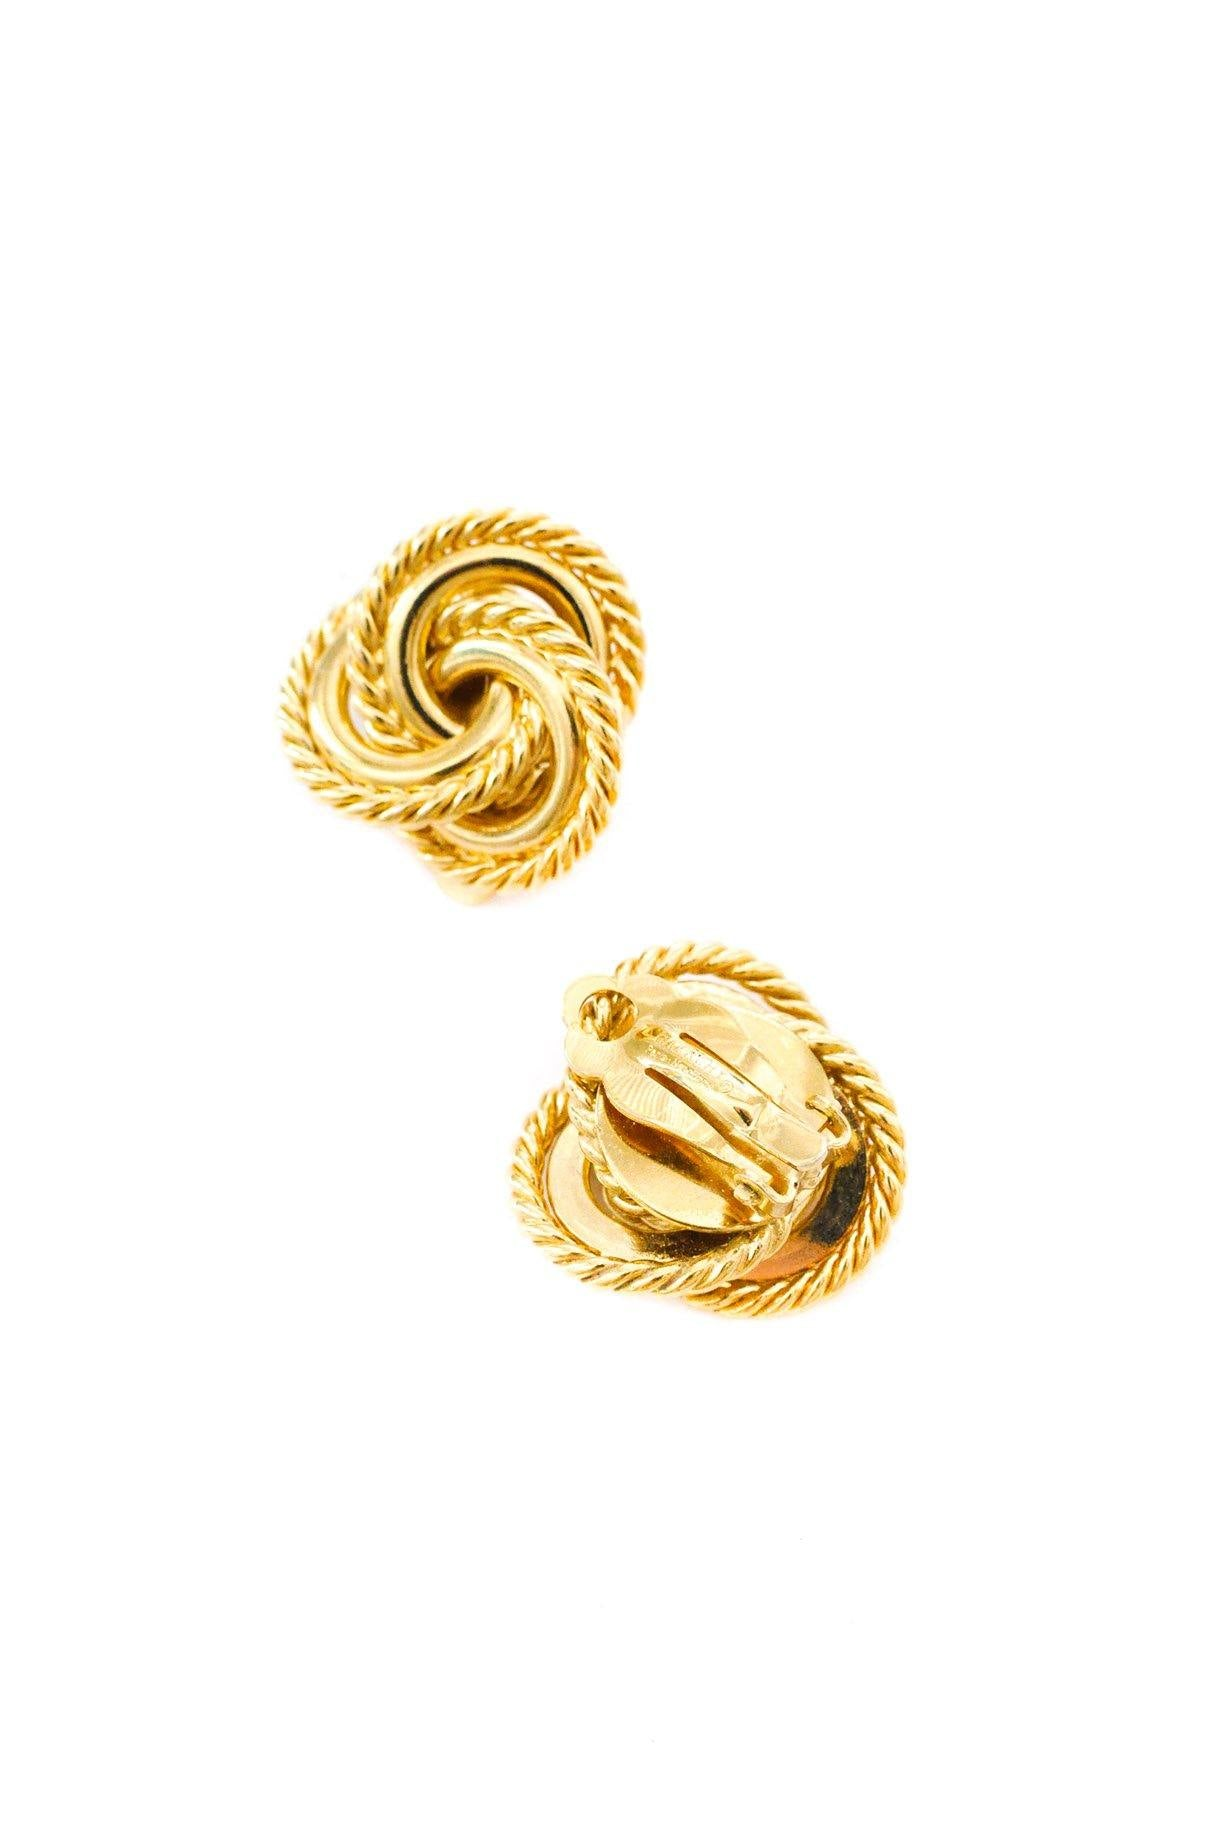 Givenchy Love Knot Clip-on Earrings